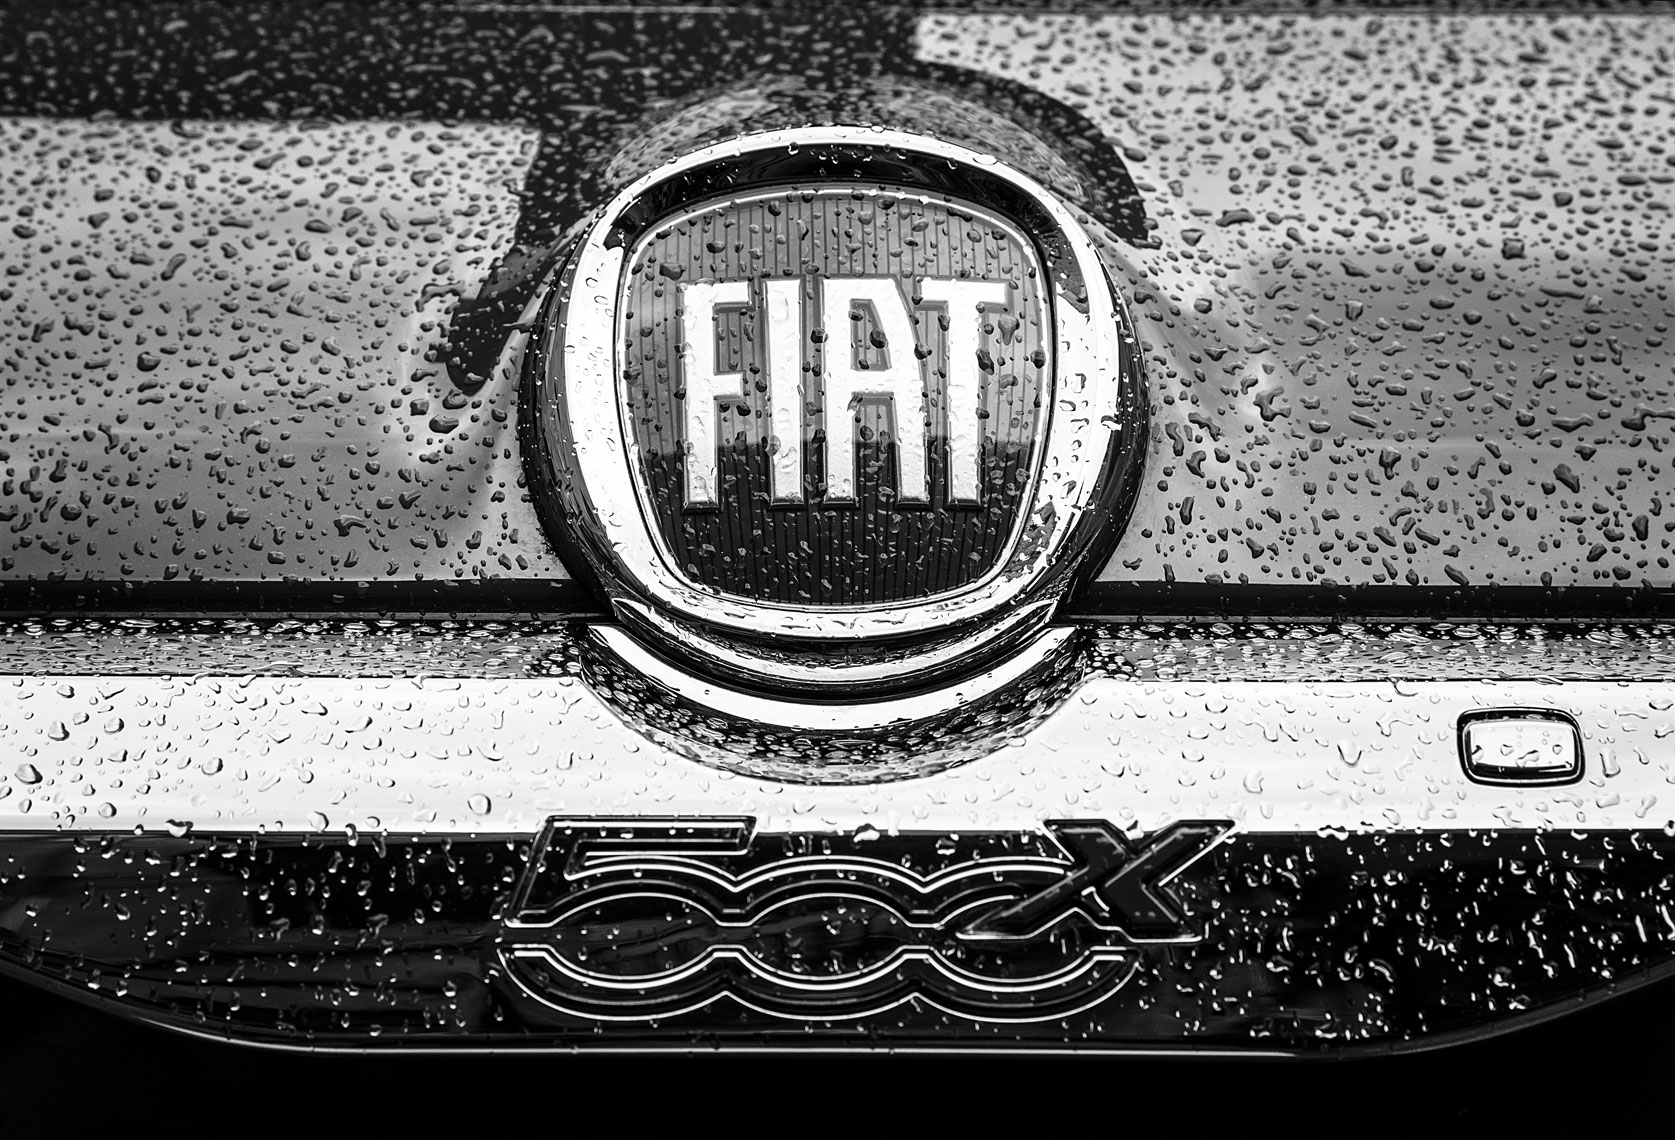 Christopher Nelson Photography|Fiat 500x|Seattle|Logo|B&W